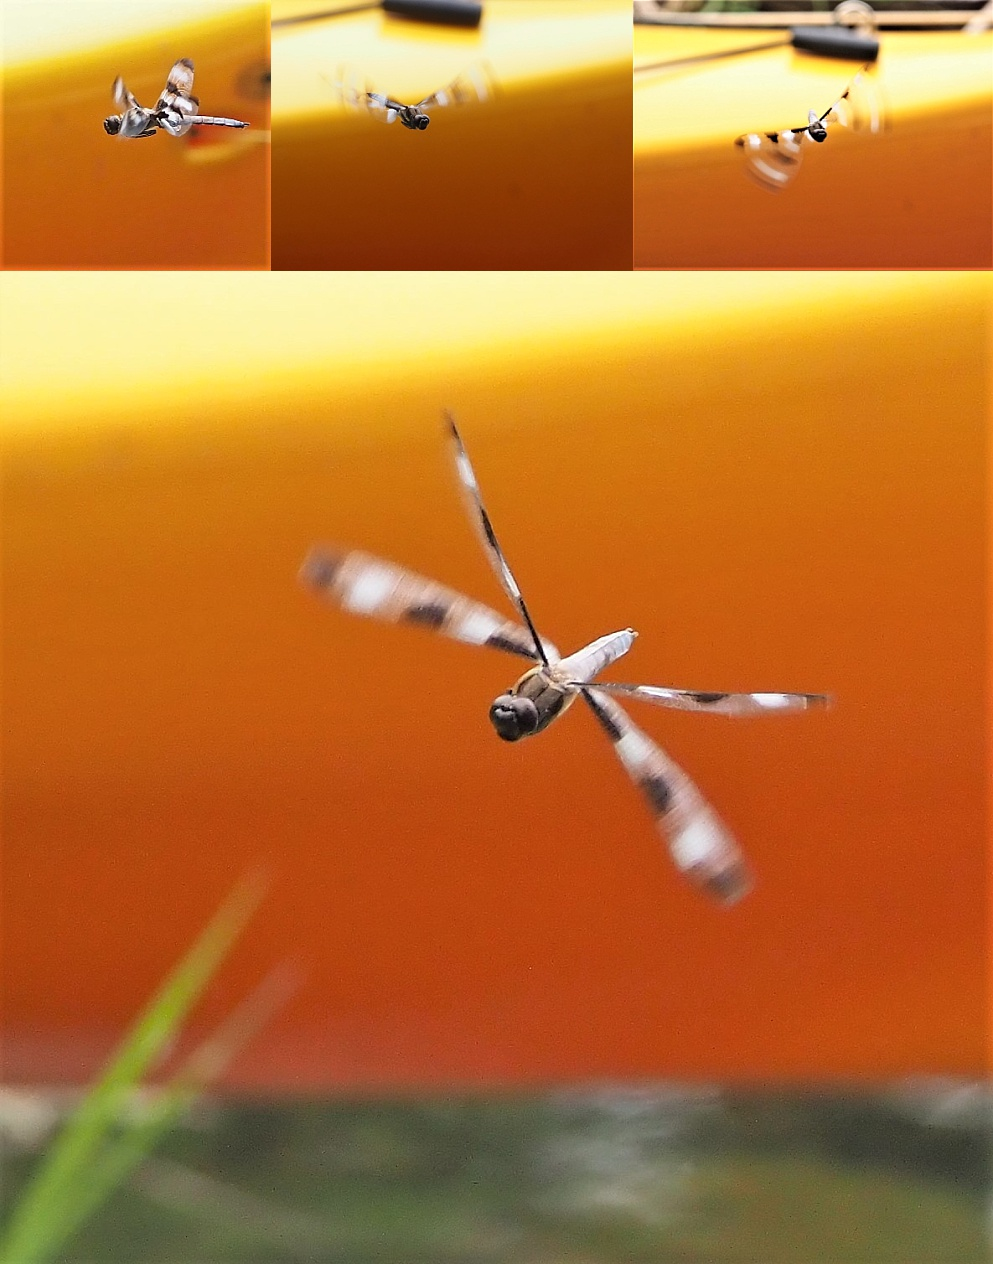 Collage of unidentified Odonata insect, in mid-air